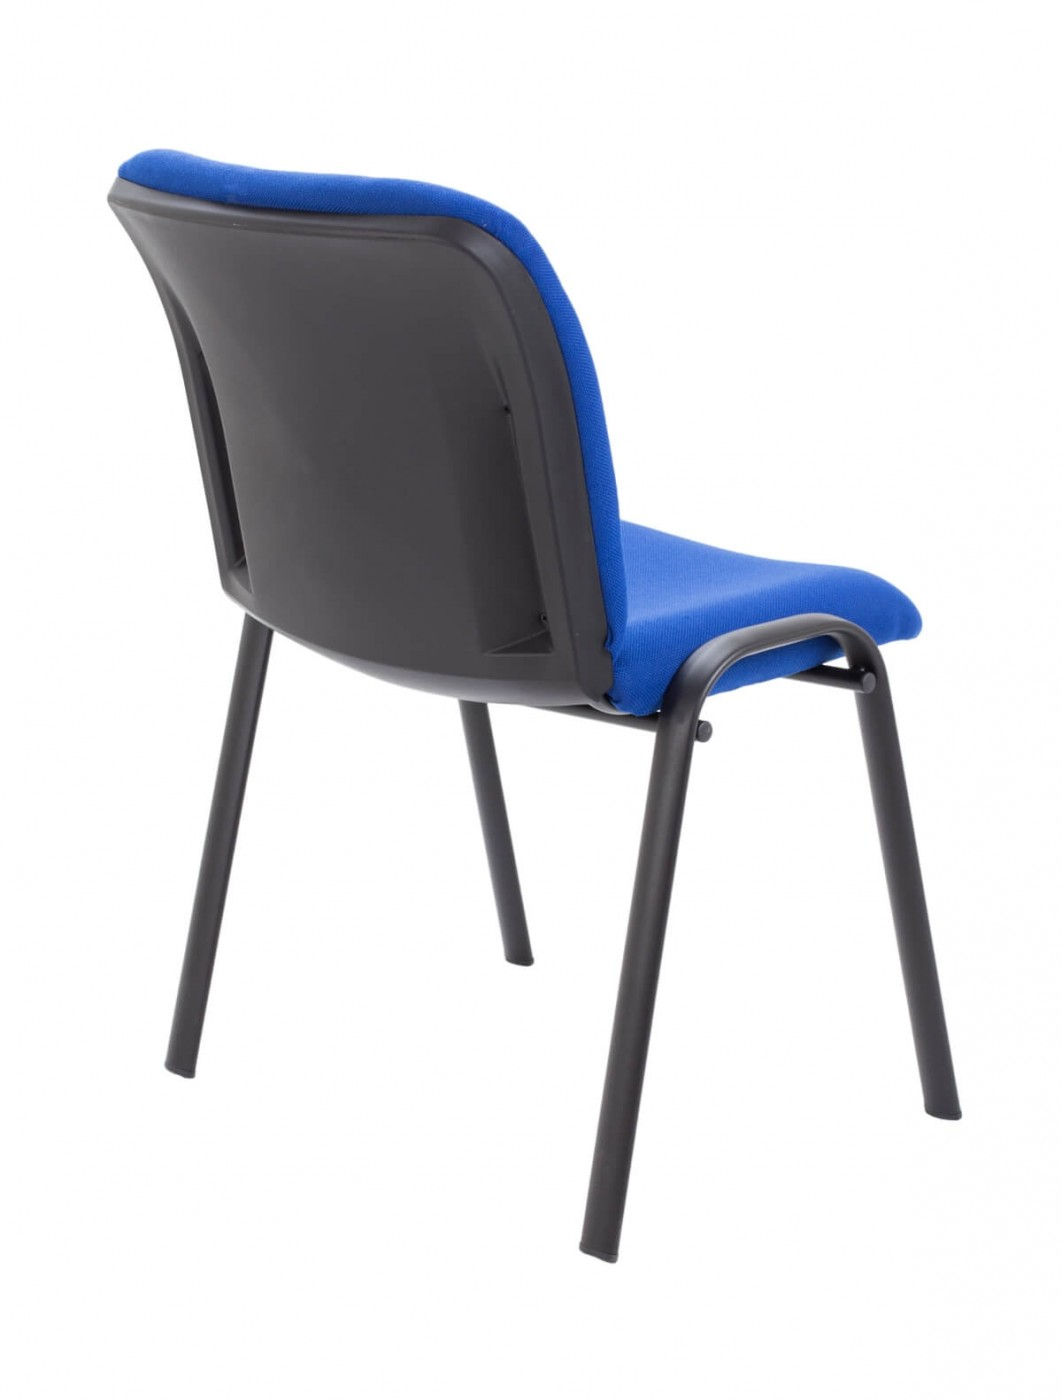 hand second rear chairs aof meda angle conference used vitra chair